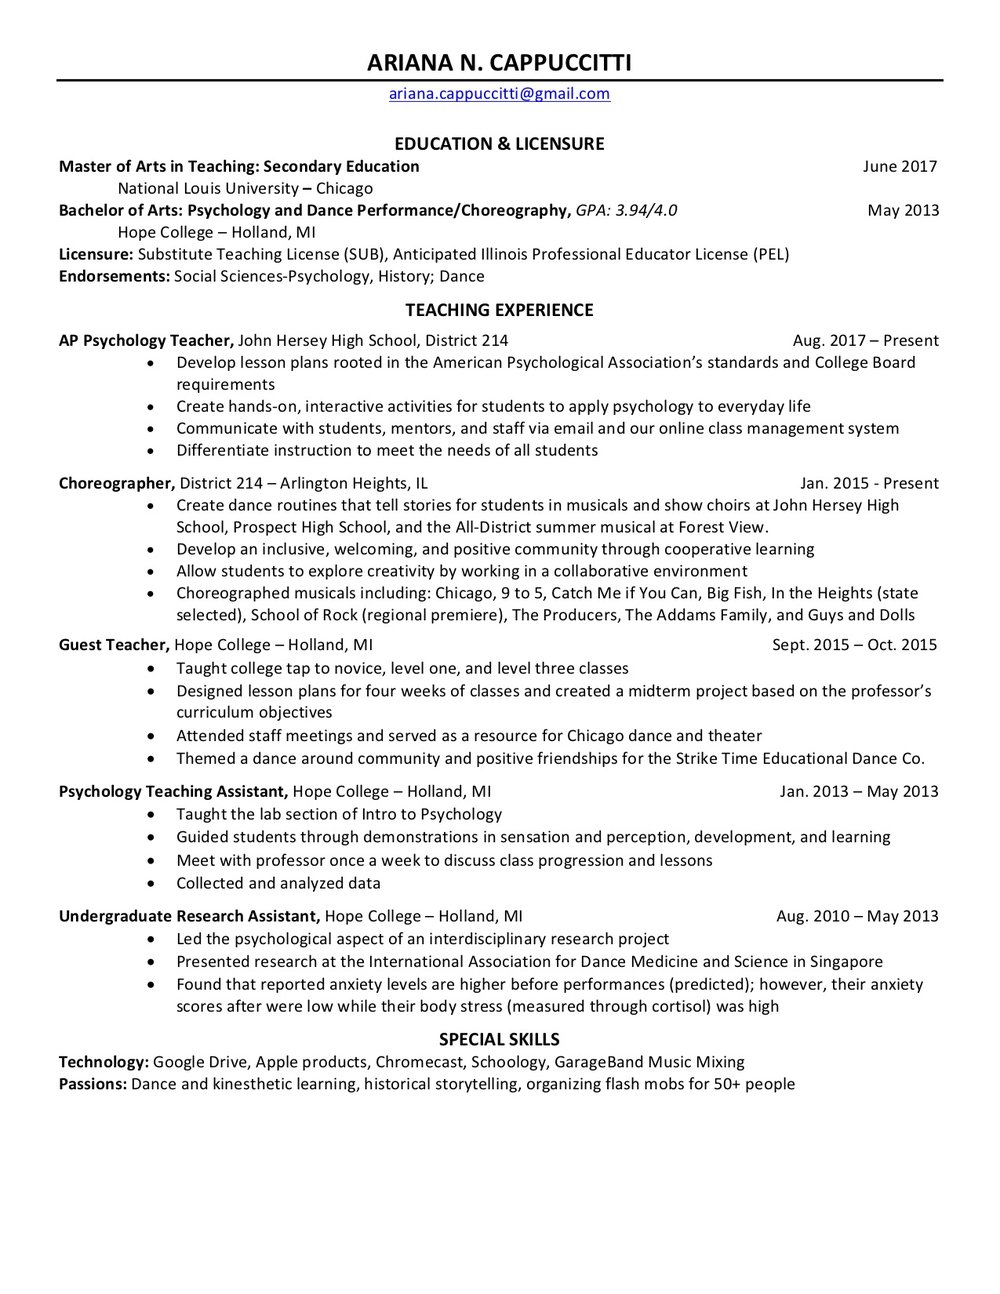 Cappuccitti Educator Resume.jpg